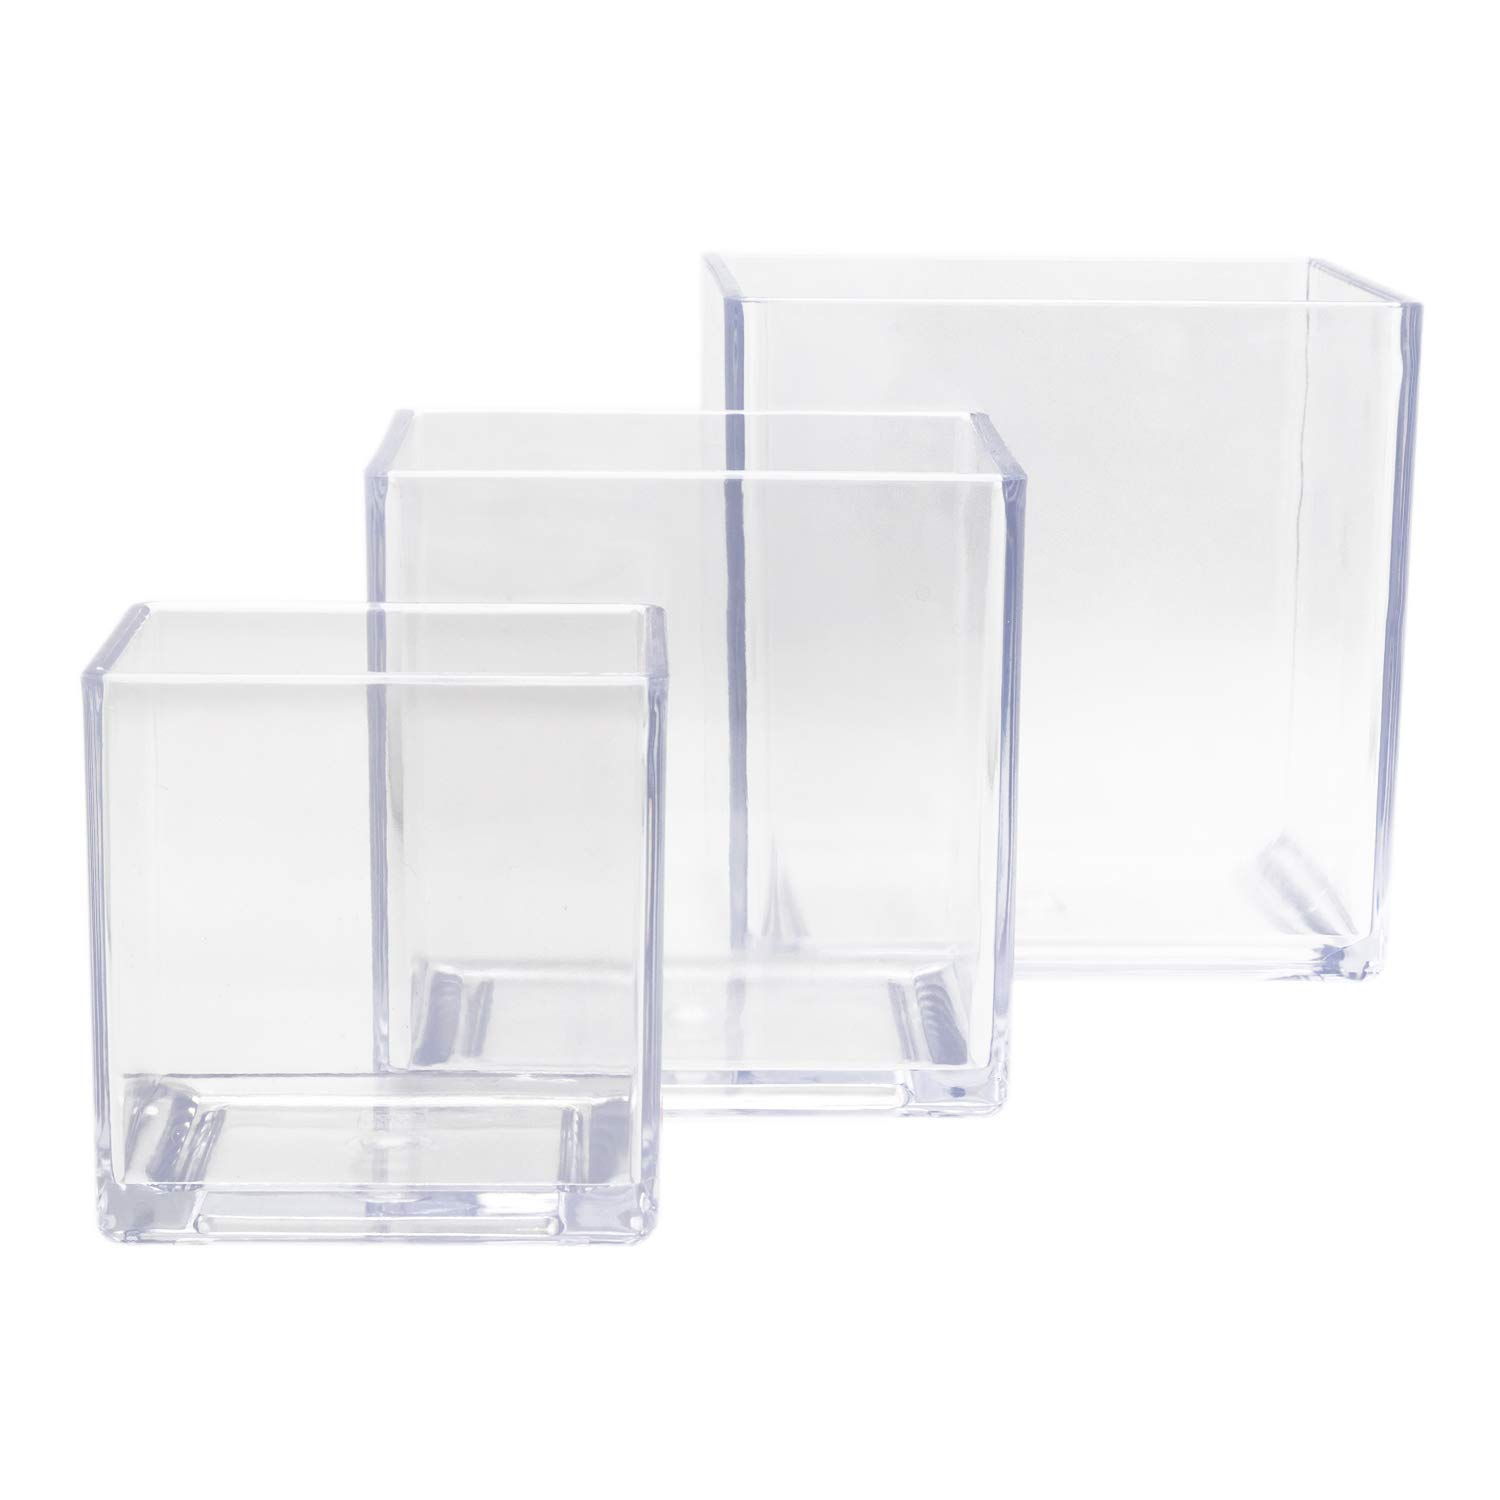 """Royal Imports Flower Acrylic Vases Cubes - Decorative Centerpiece for Home or Wedding - Non Breakable Plastic - 4"""", 5"""", 6"""" Set of 3 - Clear"""